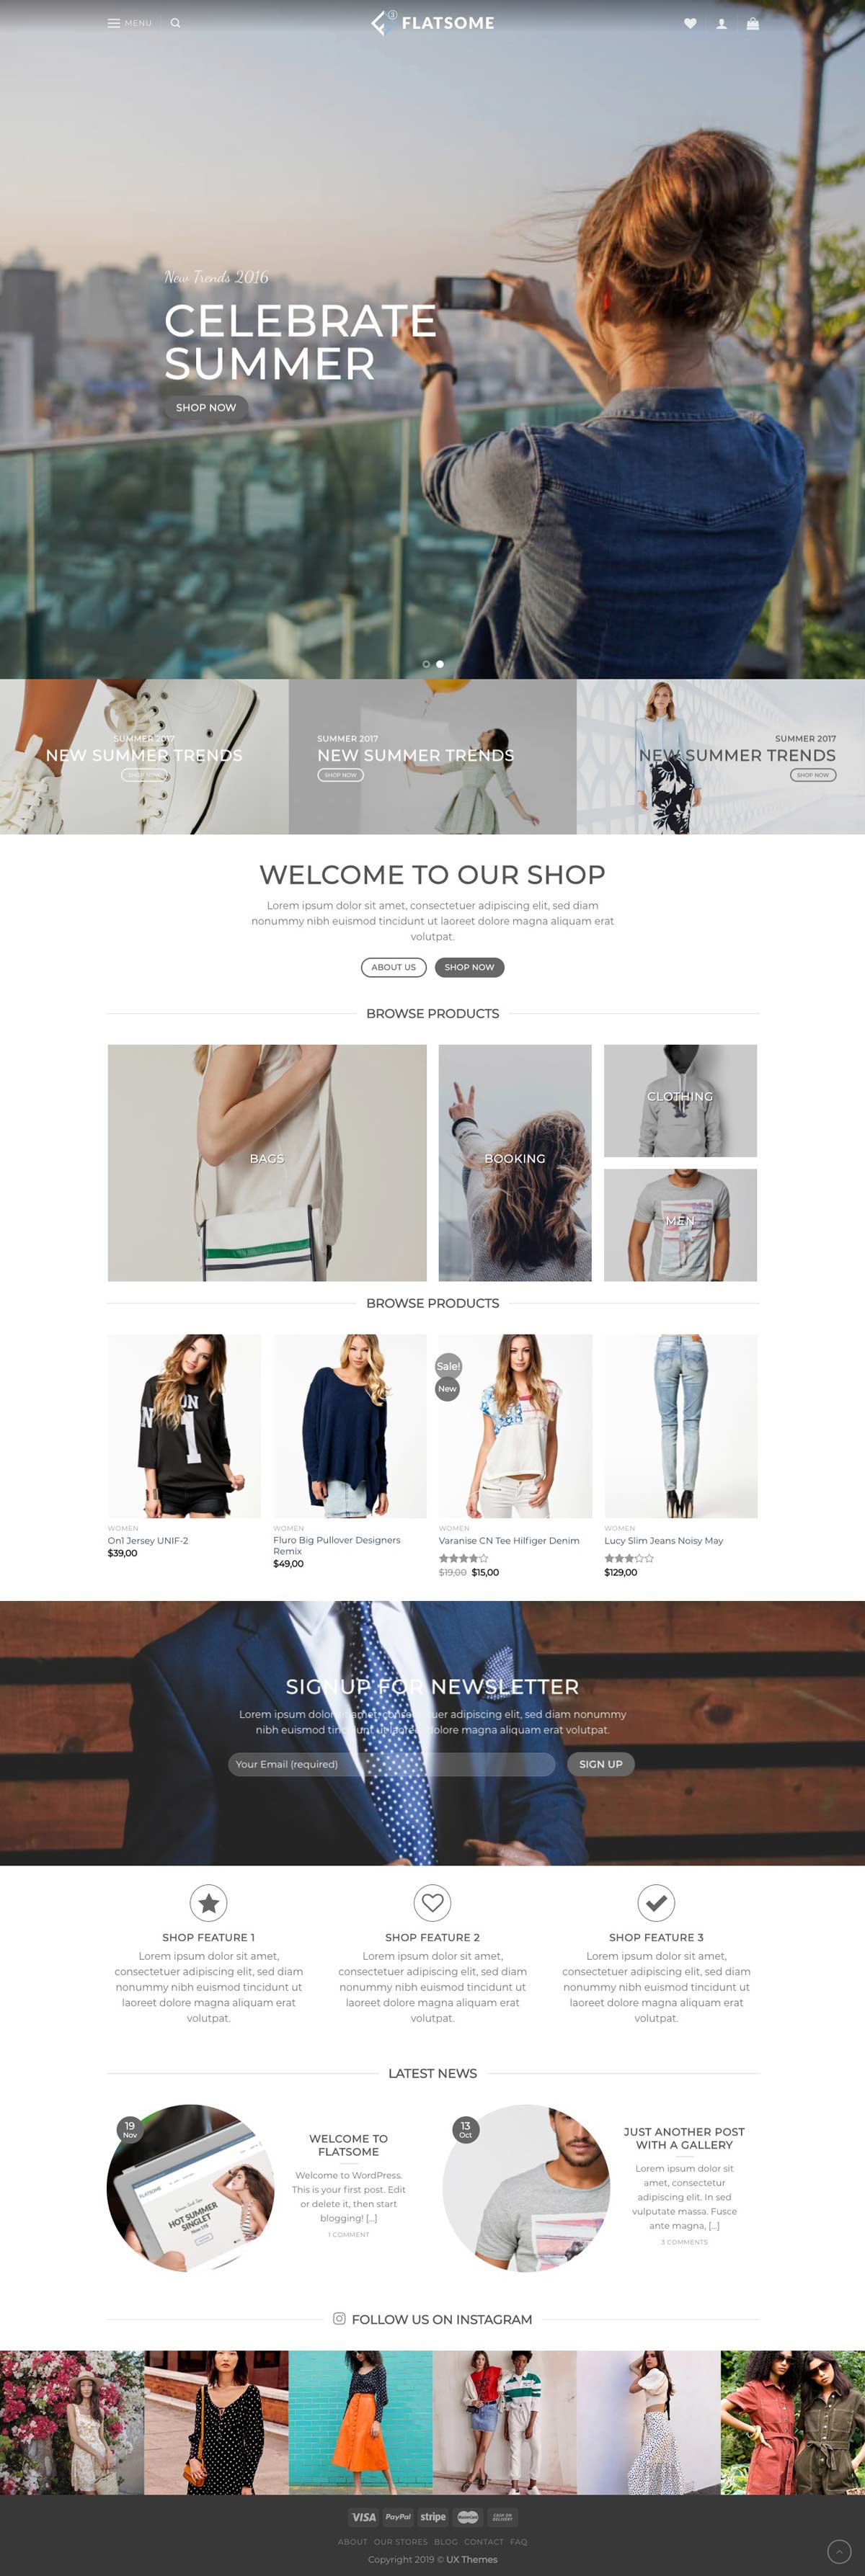 ecommerce modern web design sample